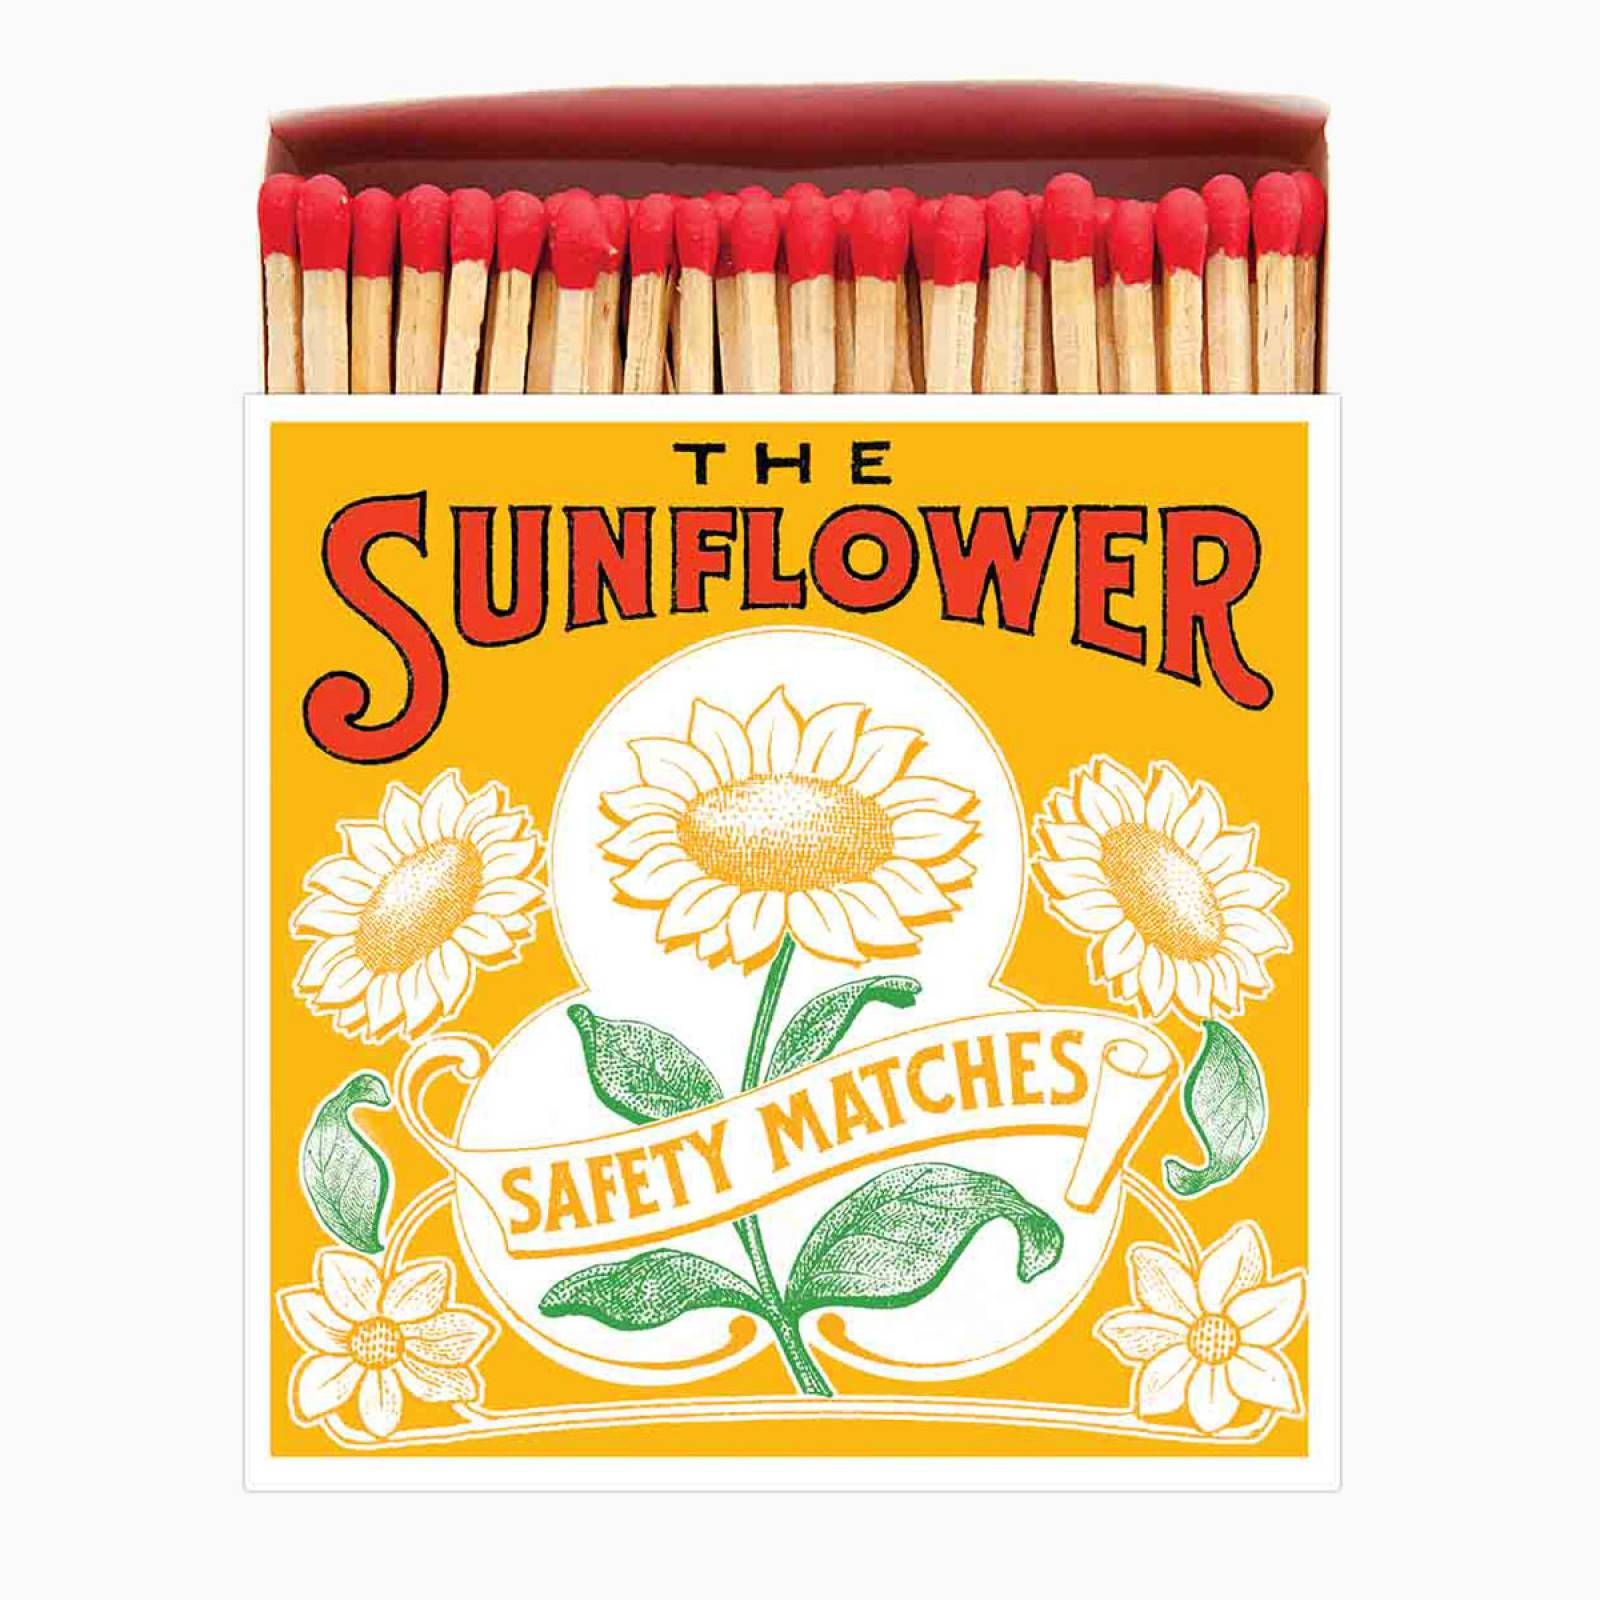 The Sunflower - Square Box Of Safety Matches